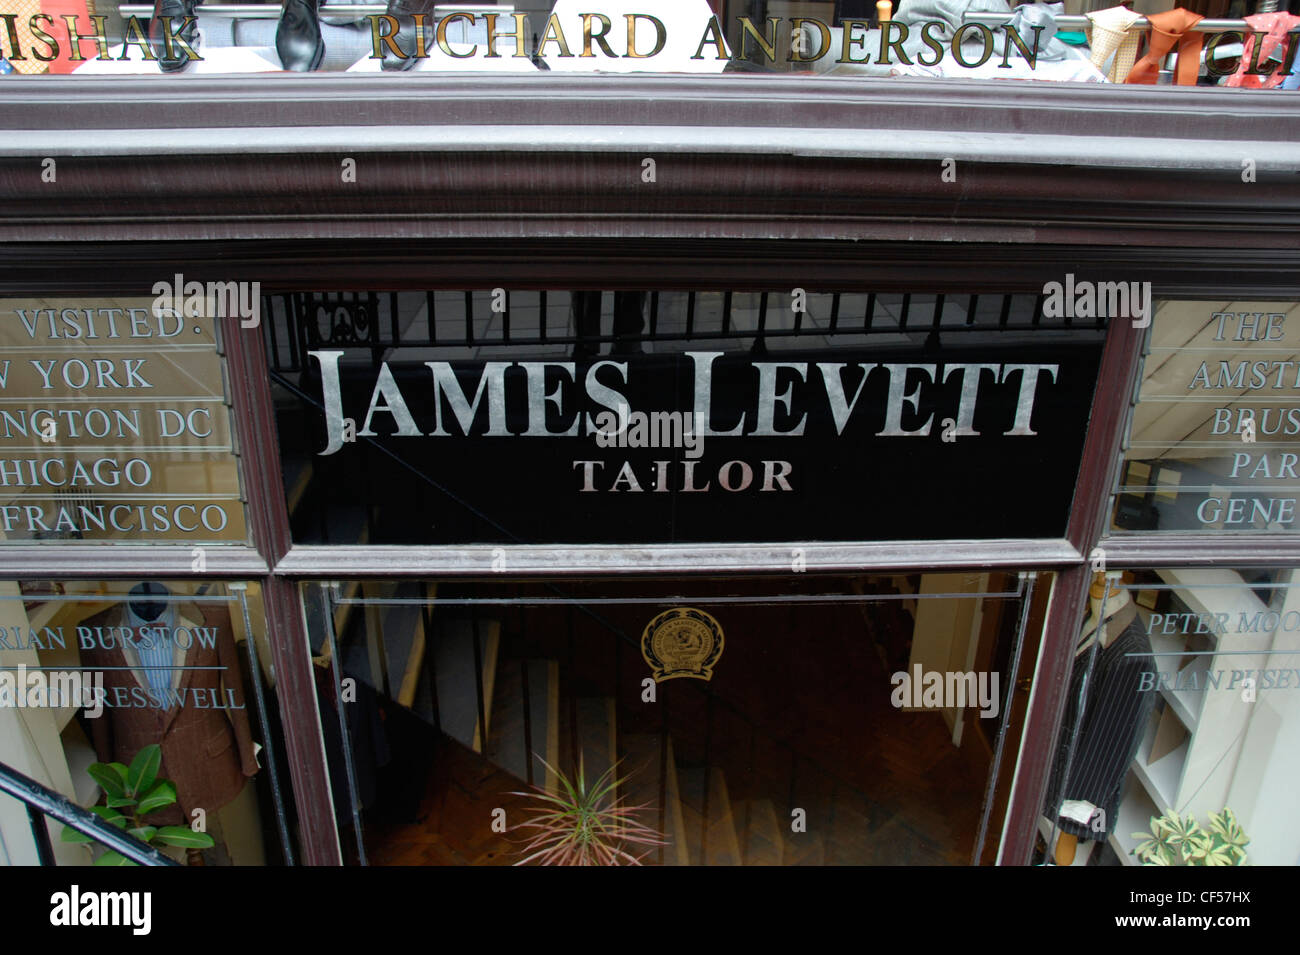 Looking down to the James Levett traditional bespoke tailor on Saville Row. - Stock Image